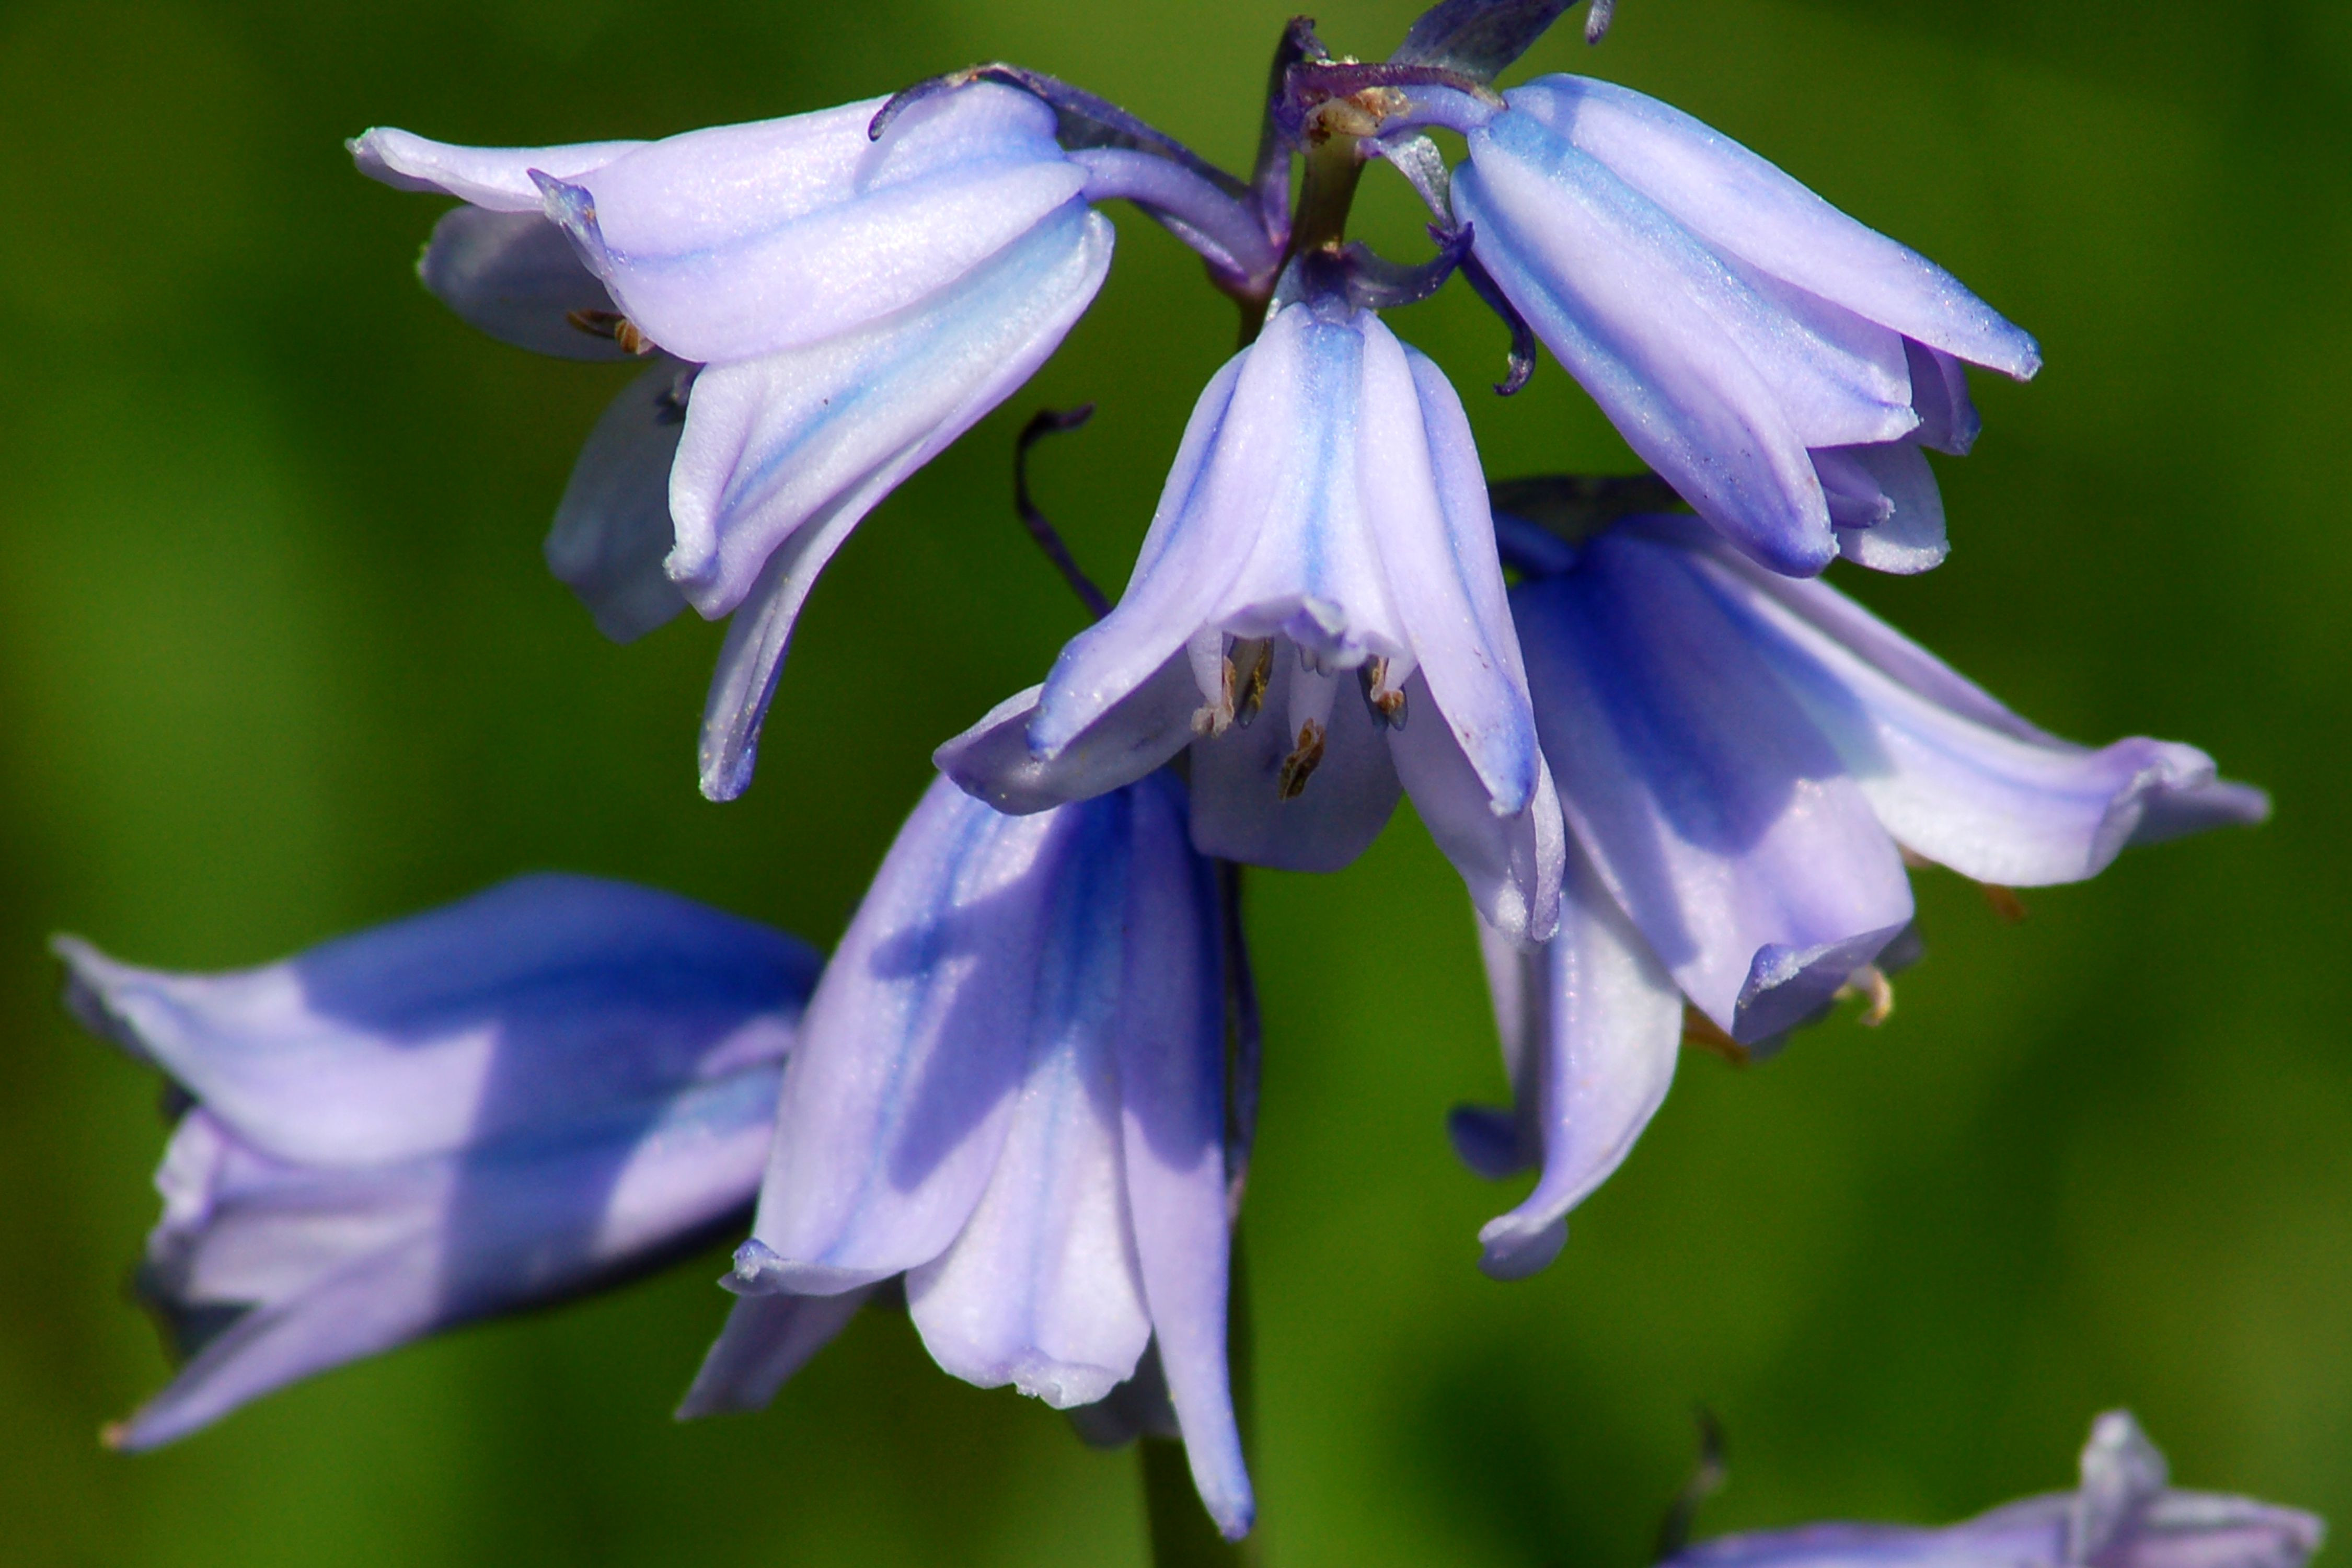 grow bulbs in glass vase of growing spanish bluebells a late blooming spring bulb regarding blue spanish bluebell big 56a584d35f9b58b7d0dd419c